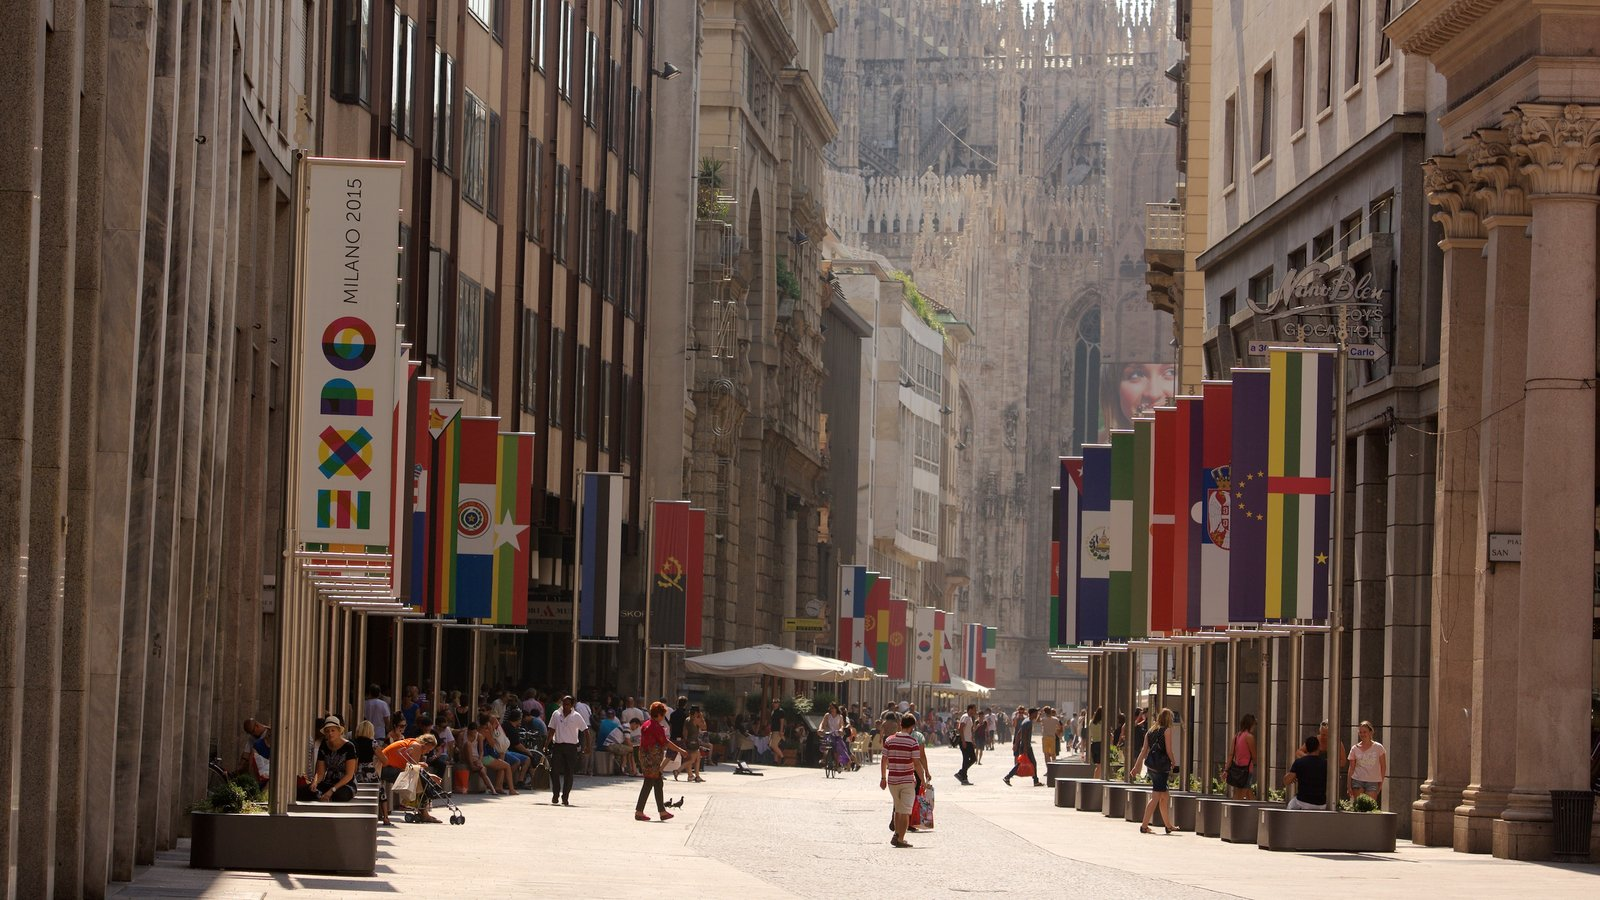 Milan showing central business district, street scenes and a city